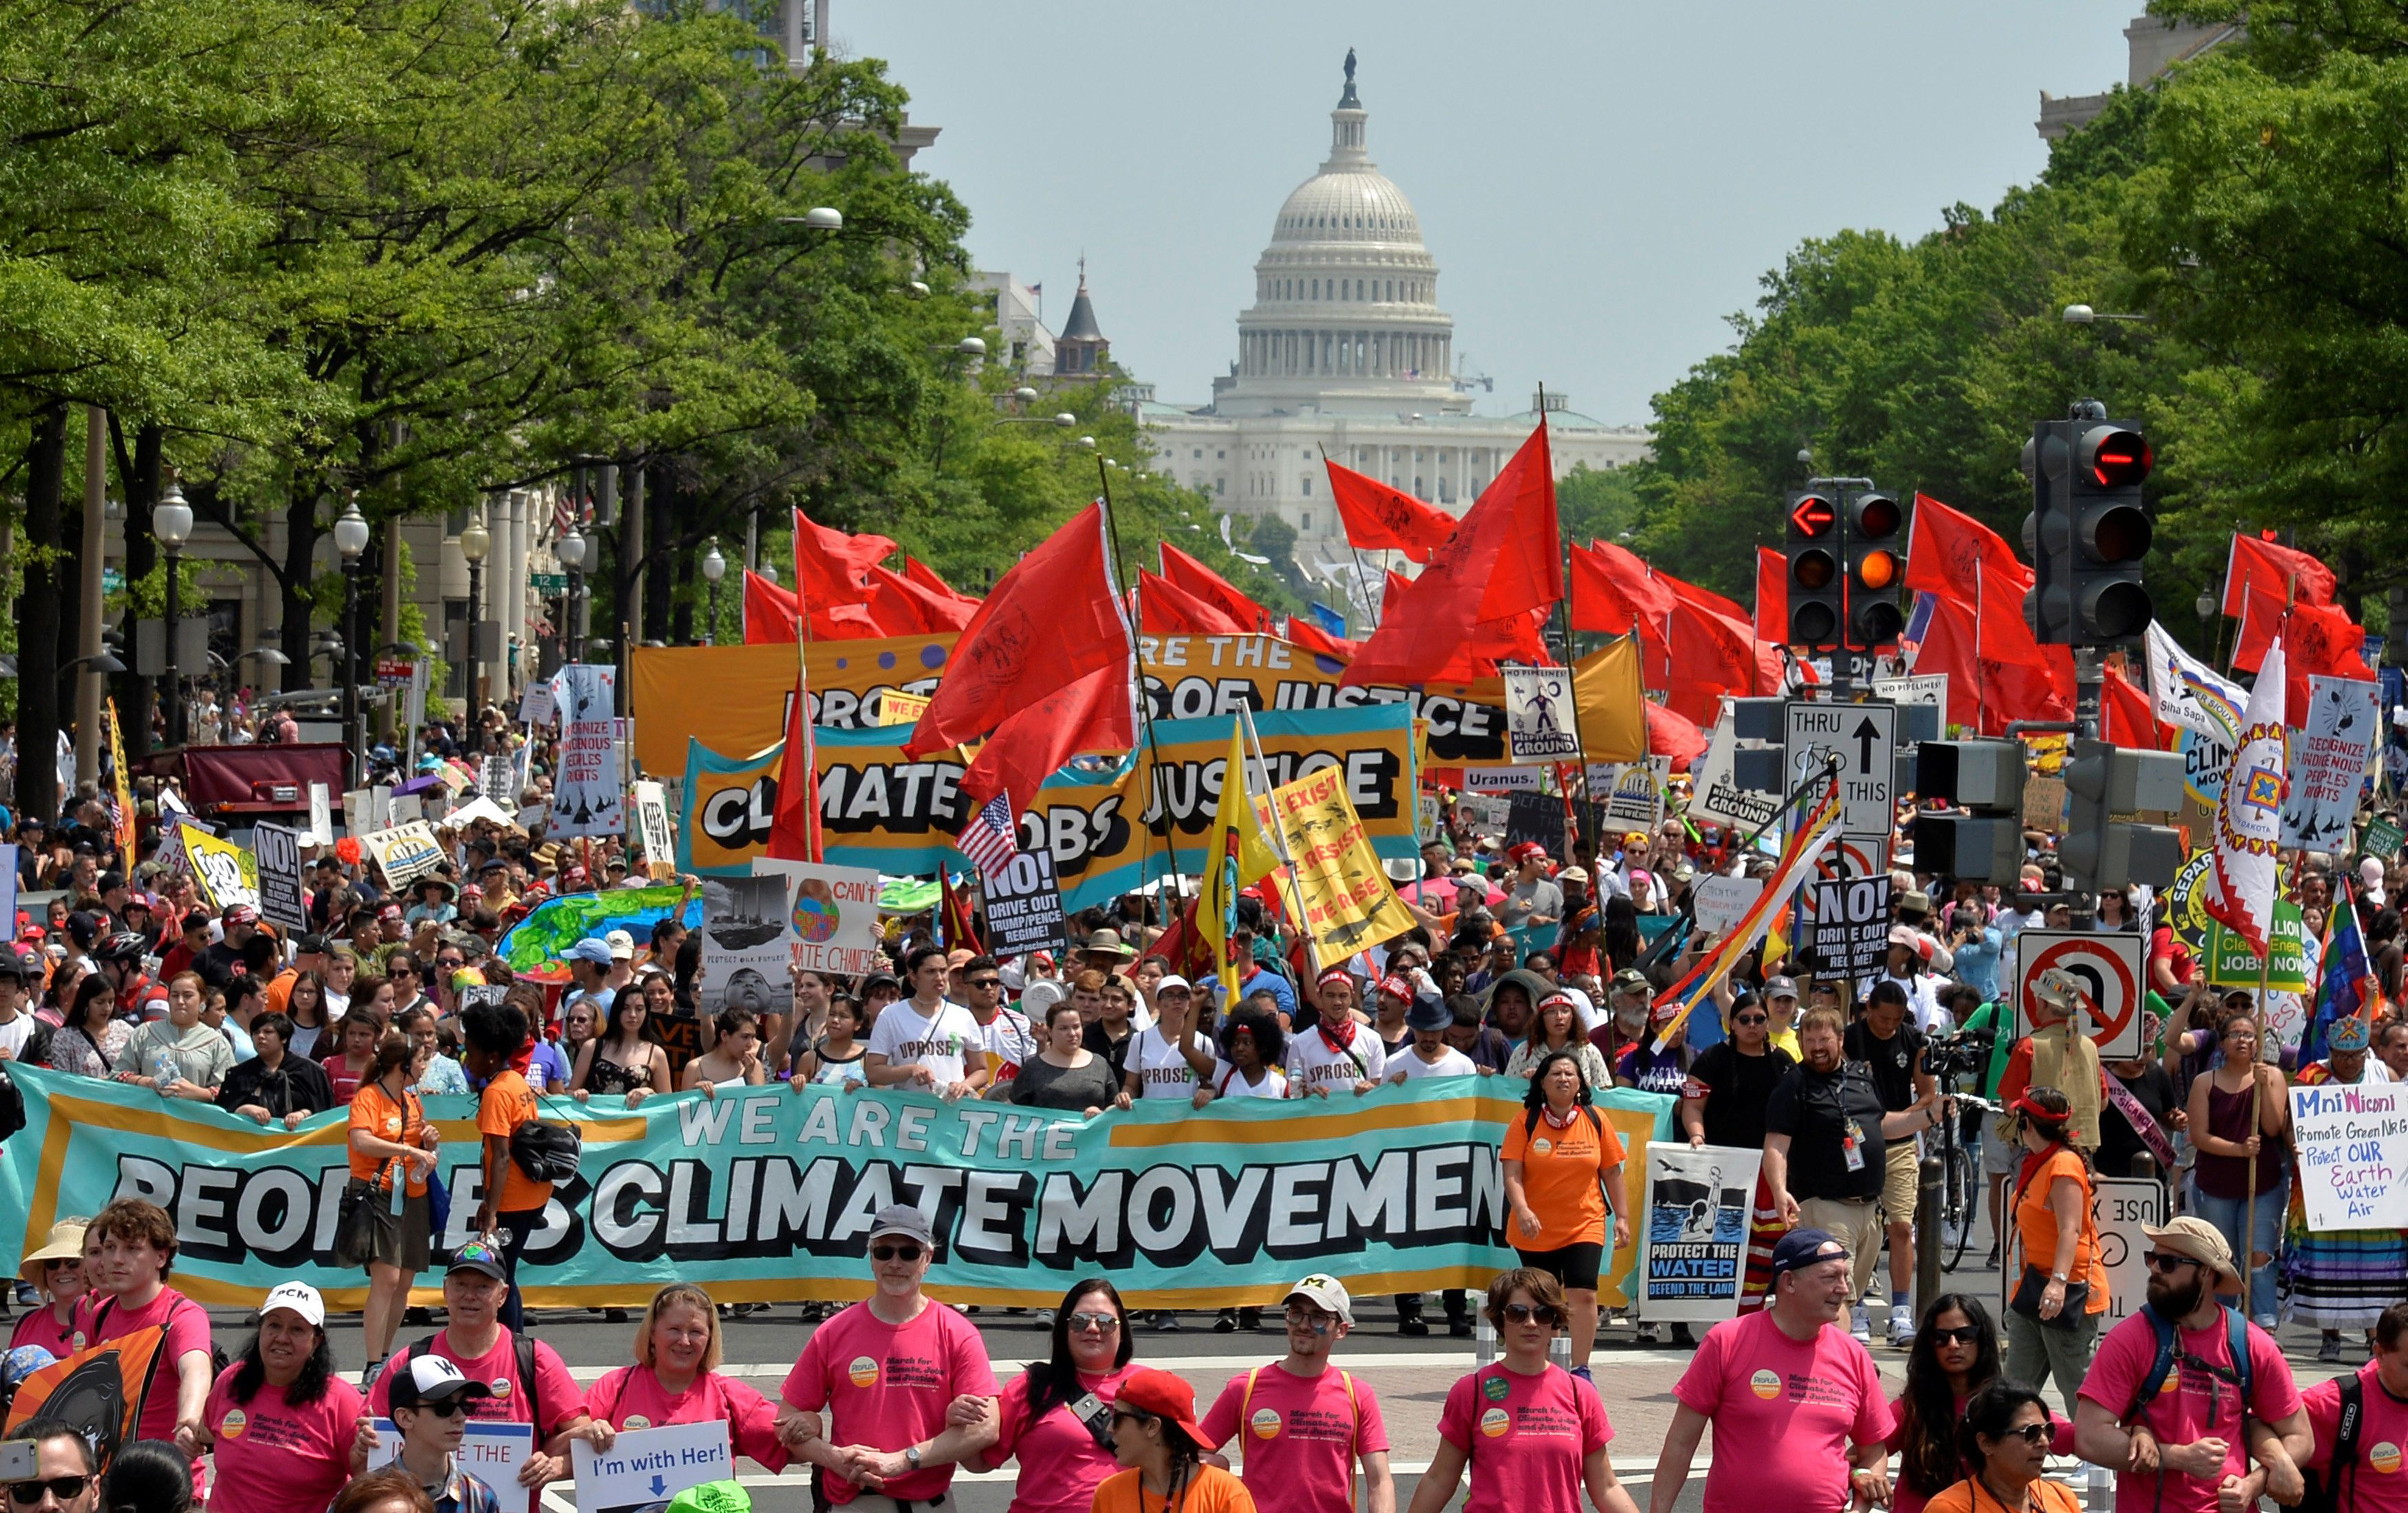 Demonstrators march down Pennsylvania Avenue during a People's Climate March, to protest U.S. President Donald Trump's stance on the environment, in Washington, U.S., April 29, 2017.     REUTERS/Mike Theiler       TPX IMAGES OF THE DAY